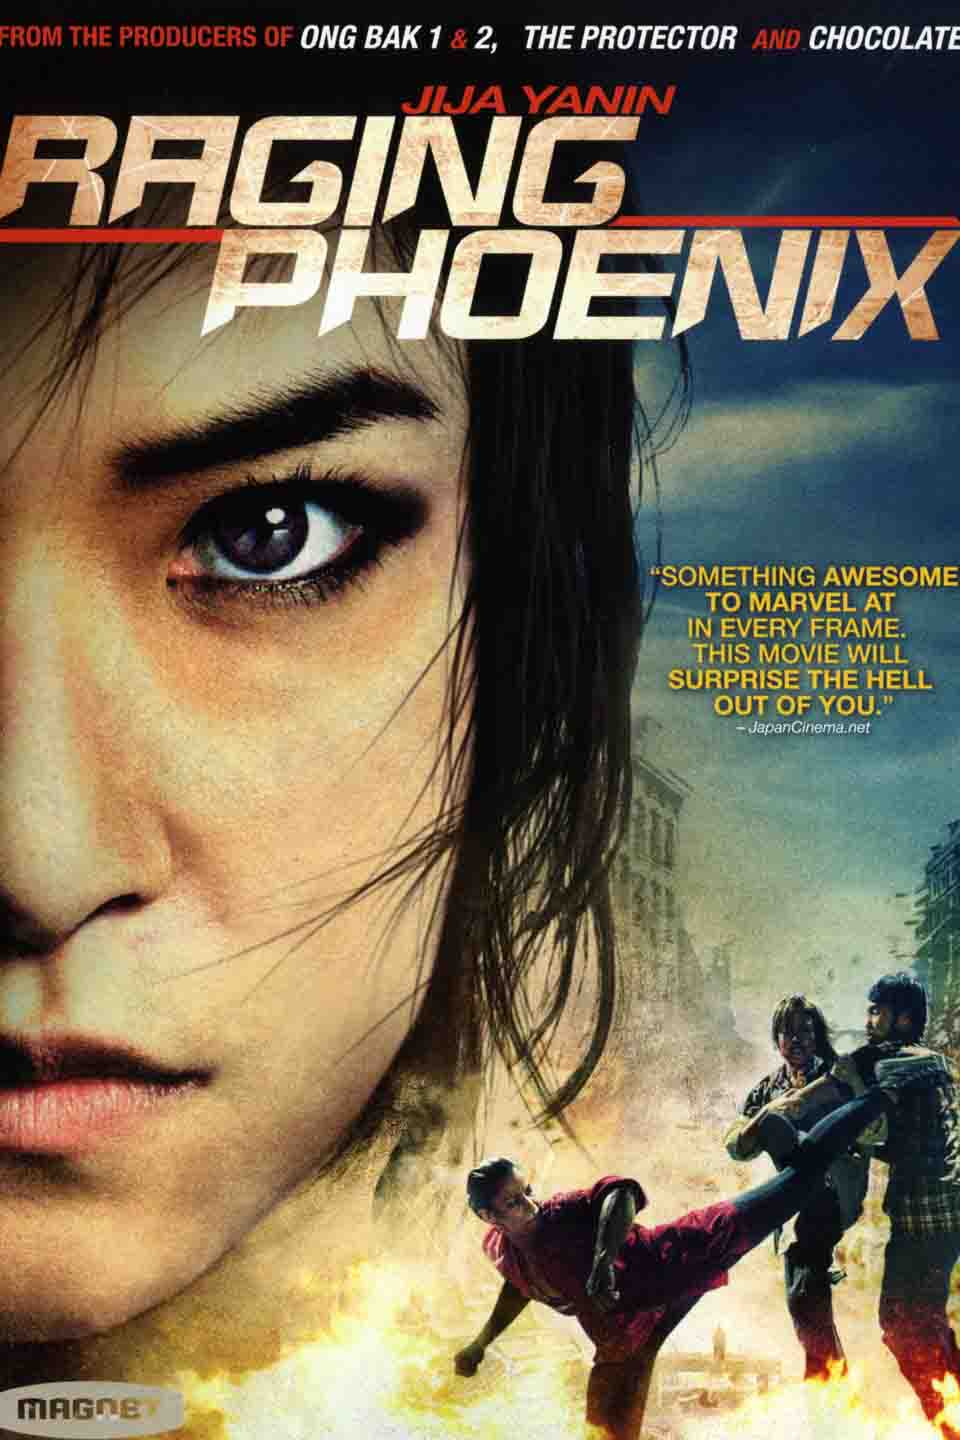 Raging Phoenix [2009] 720p Bluray x264 Dual Audio[Hindi 2 0][Thai 5 1] Hon3y ~ 1.50 GB